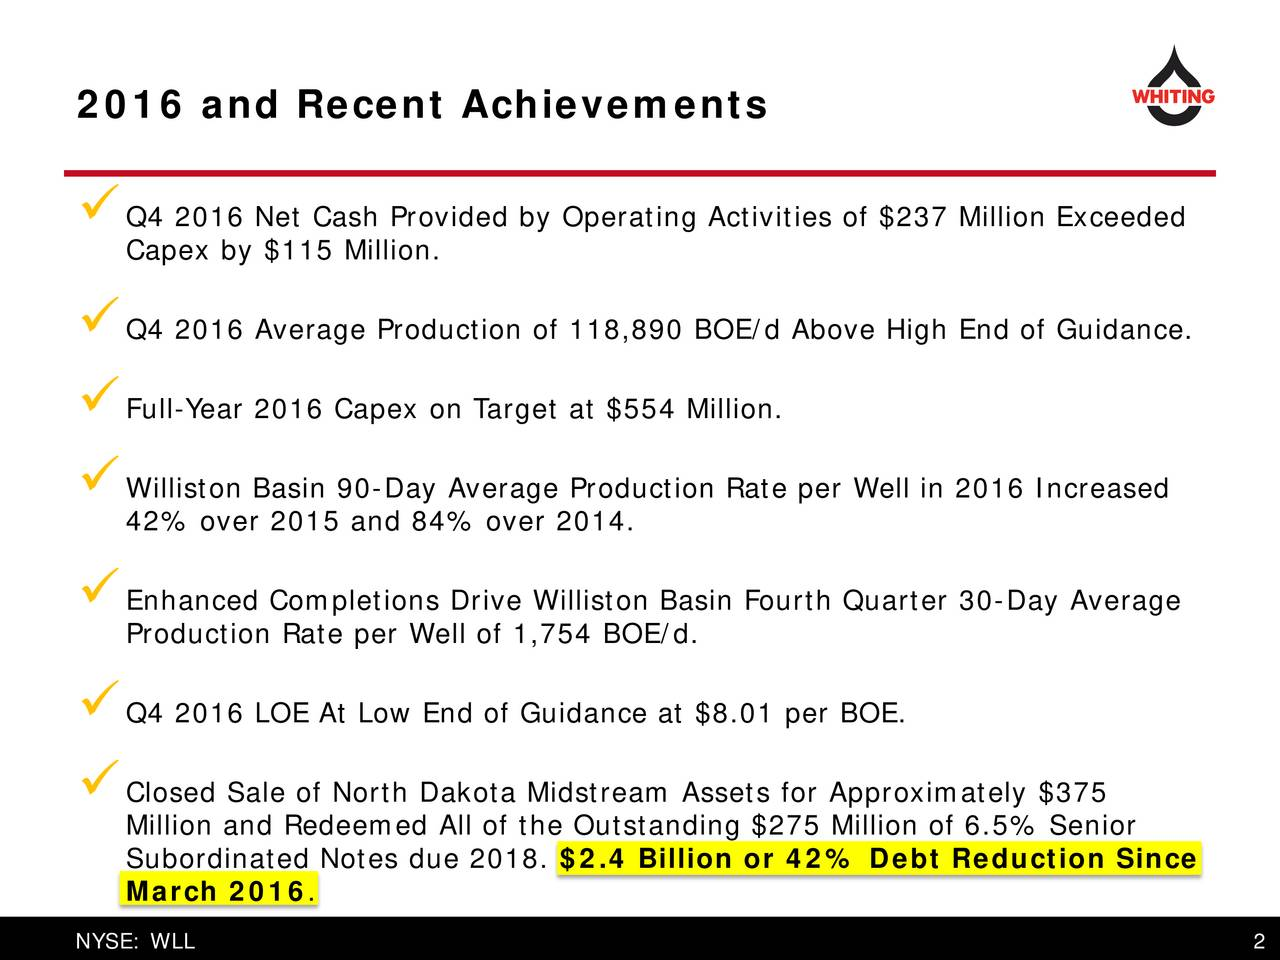 Q4 2016 Net Cash Provided by Operating Activities of $237 Million Exceeded Capex by $115 Million. Q4 2016 Average Production of 118,890 BOE/d Above High End of Guidance. Full-Year2016 Capex on Target at $554 Million. Williston Basin 90-Day Average Production Rate per Well in 2016 Increased 42% over 2015 and 84% over 2014. Enhanced Completions Drive Williston Basin Fourth Quarter 30-Day Average Production Rate per Well of 1,754 BOE/d. Q4 2016 LOE At Low End of Guidance at $8.01 per BOE. Million and Redeemed All of the Outstanding $275 Million of 6.5% Senior Subordinated Notes due 2018. $2.4 Billion or 42% Debt Reduction Since March 2016.